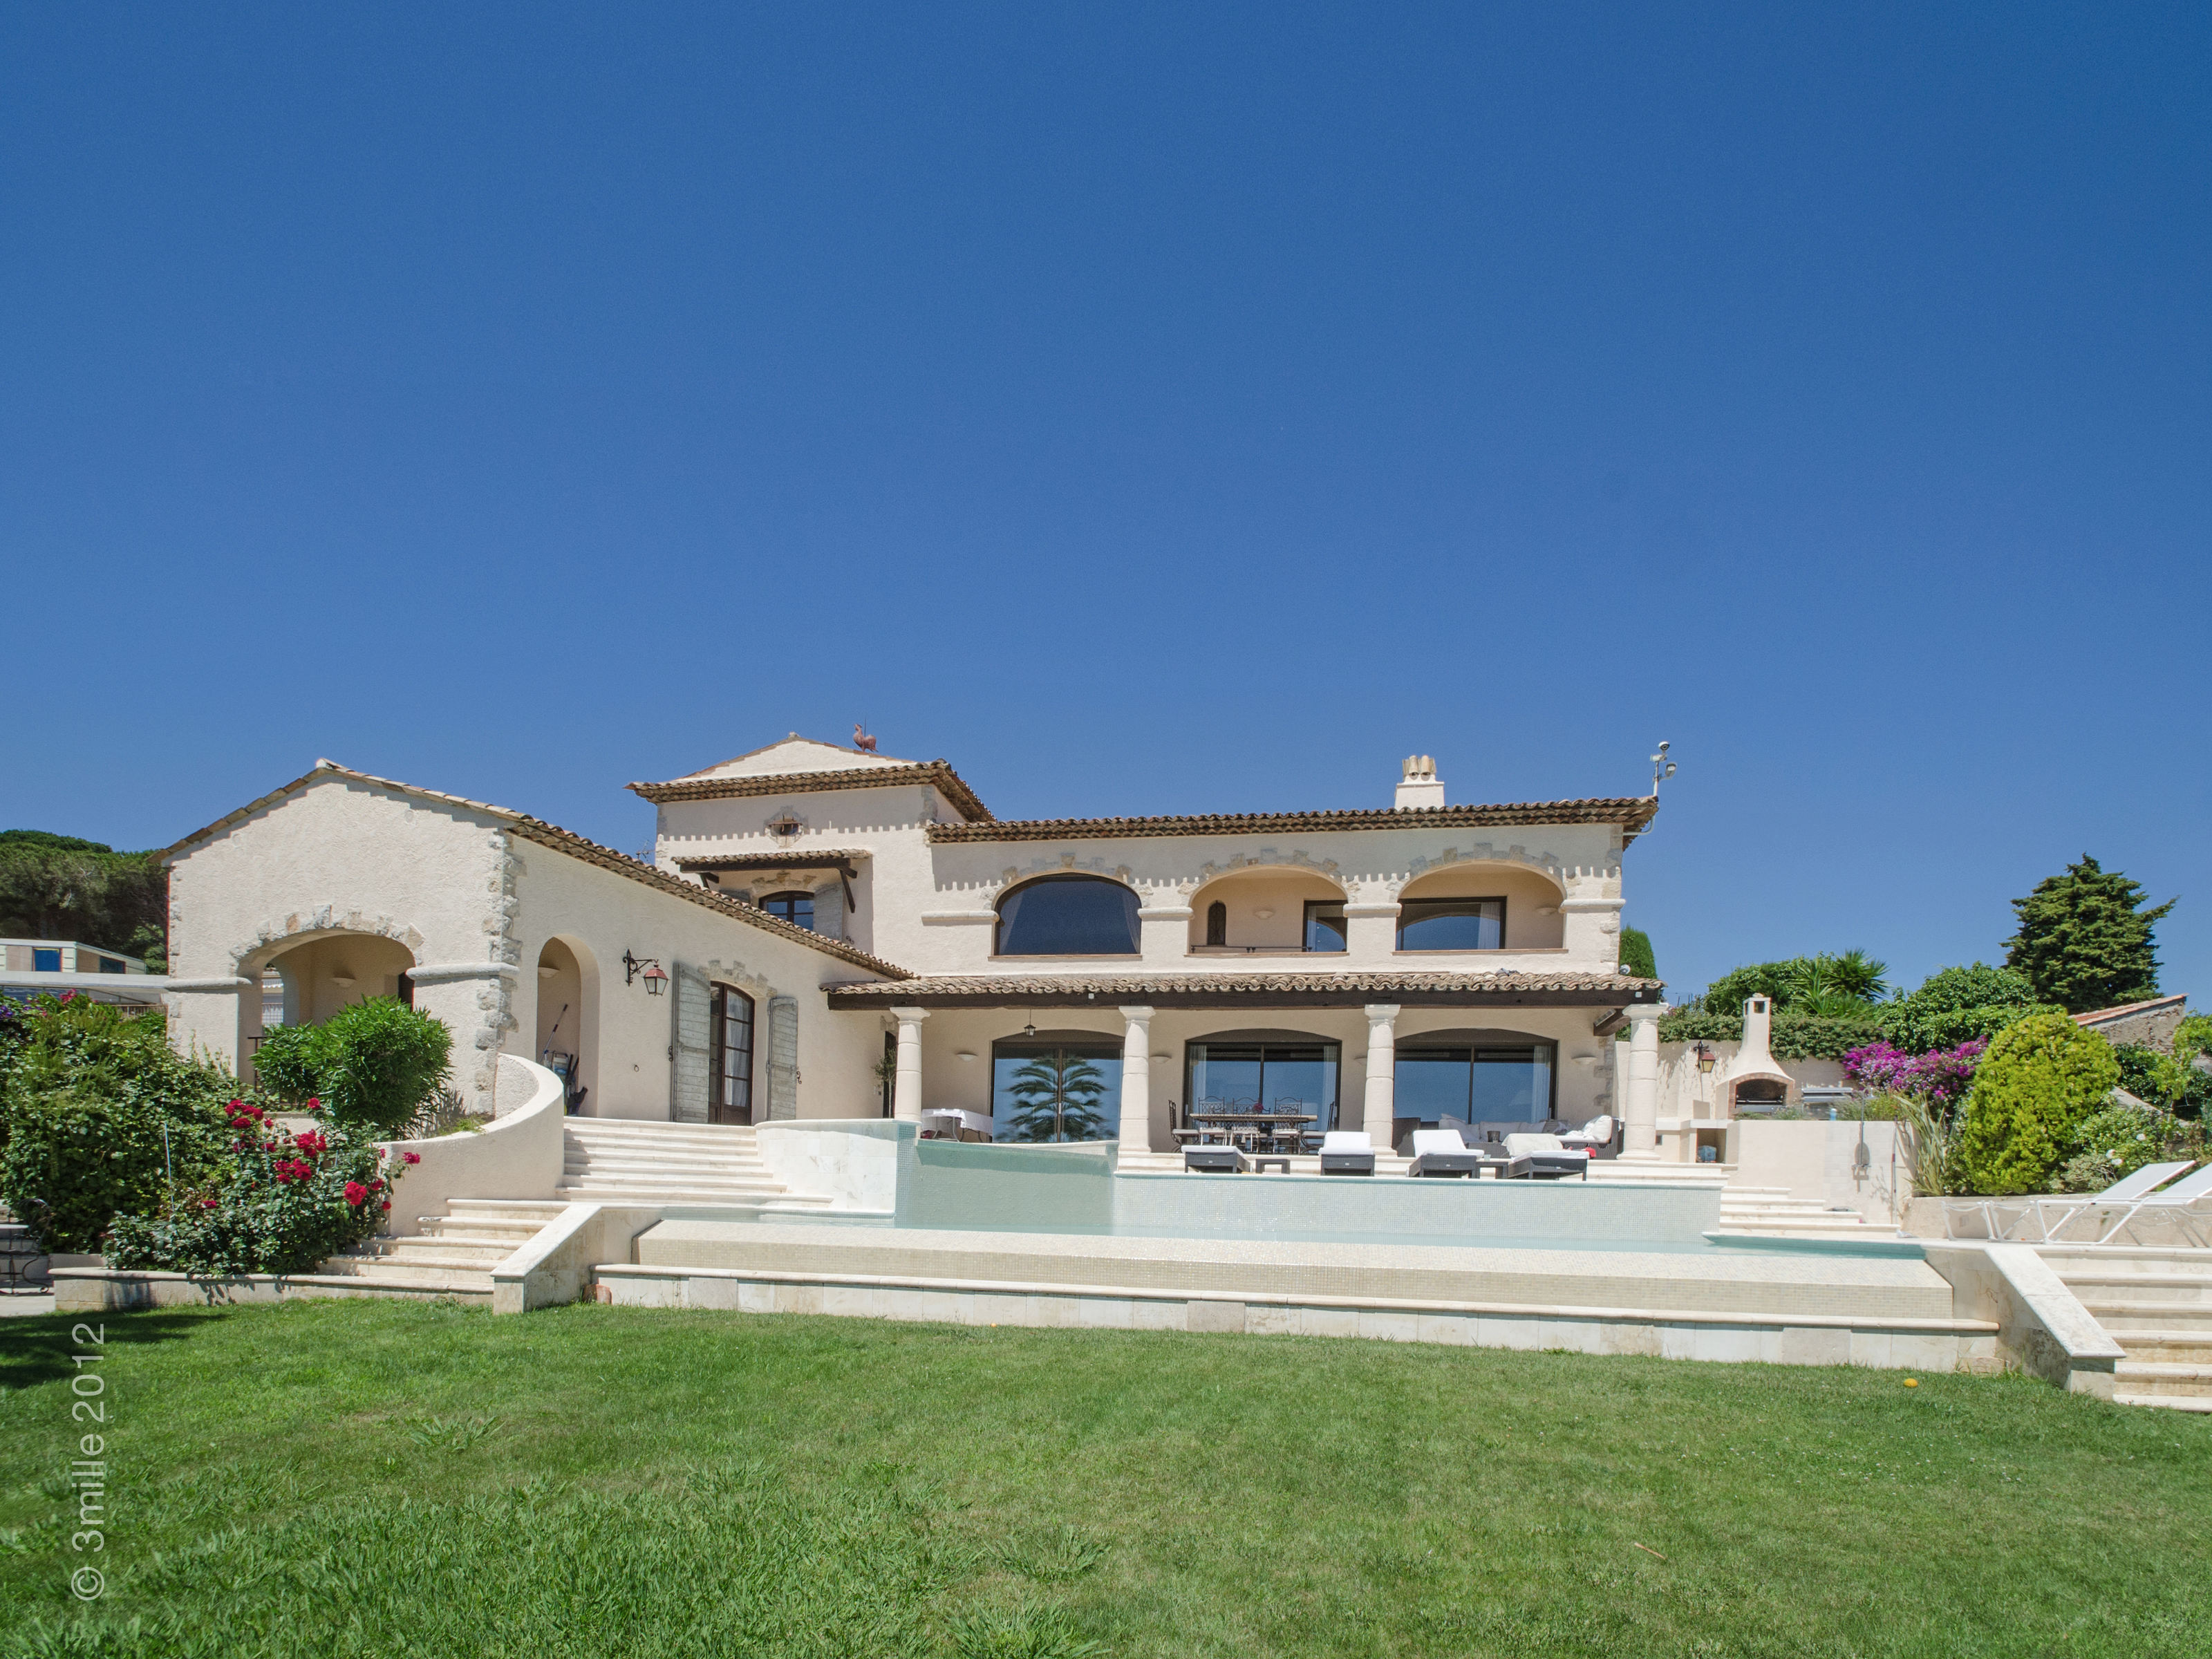 Single Family Home for Sale at EXTRAORDINARY VILLA ENJOYING 180° SEA VIEW Cannes, Provence-Alpes-Cote D'Azur 06220 France